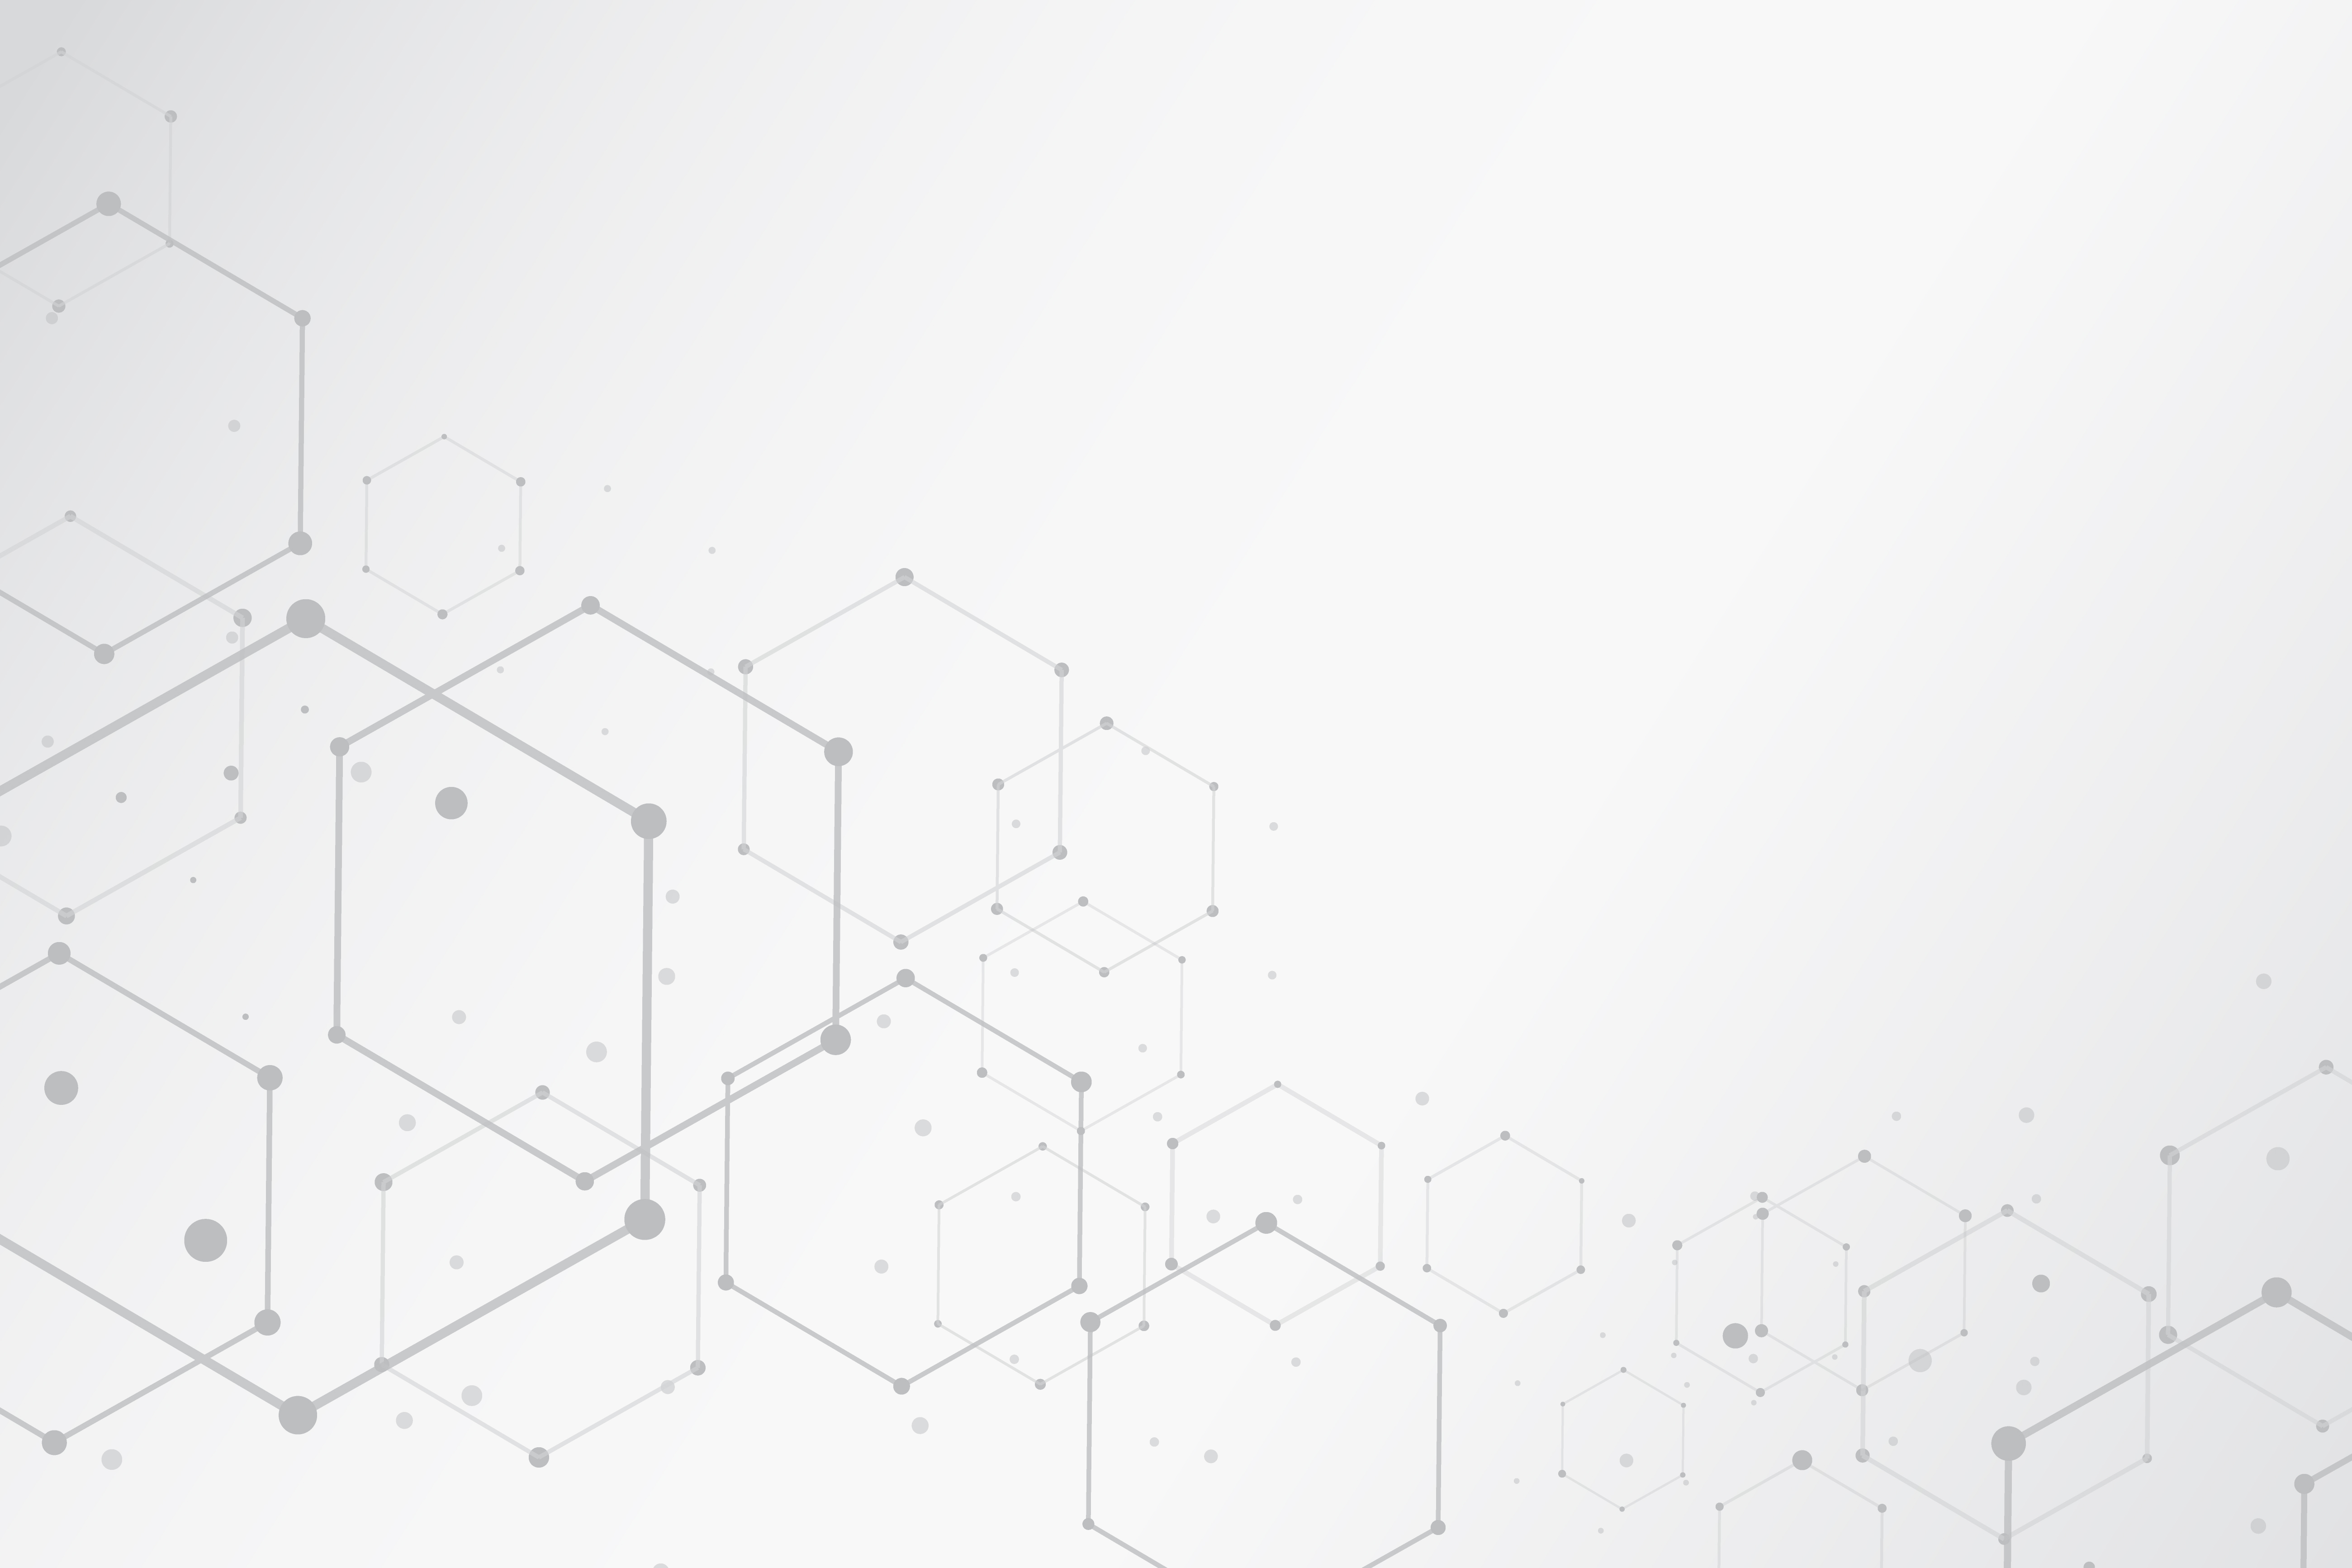 abstract hexagonal molecular structures background with